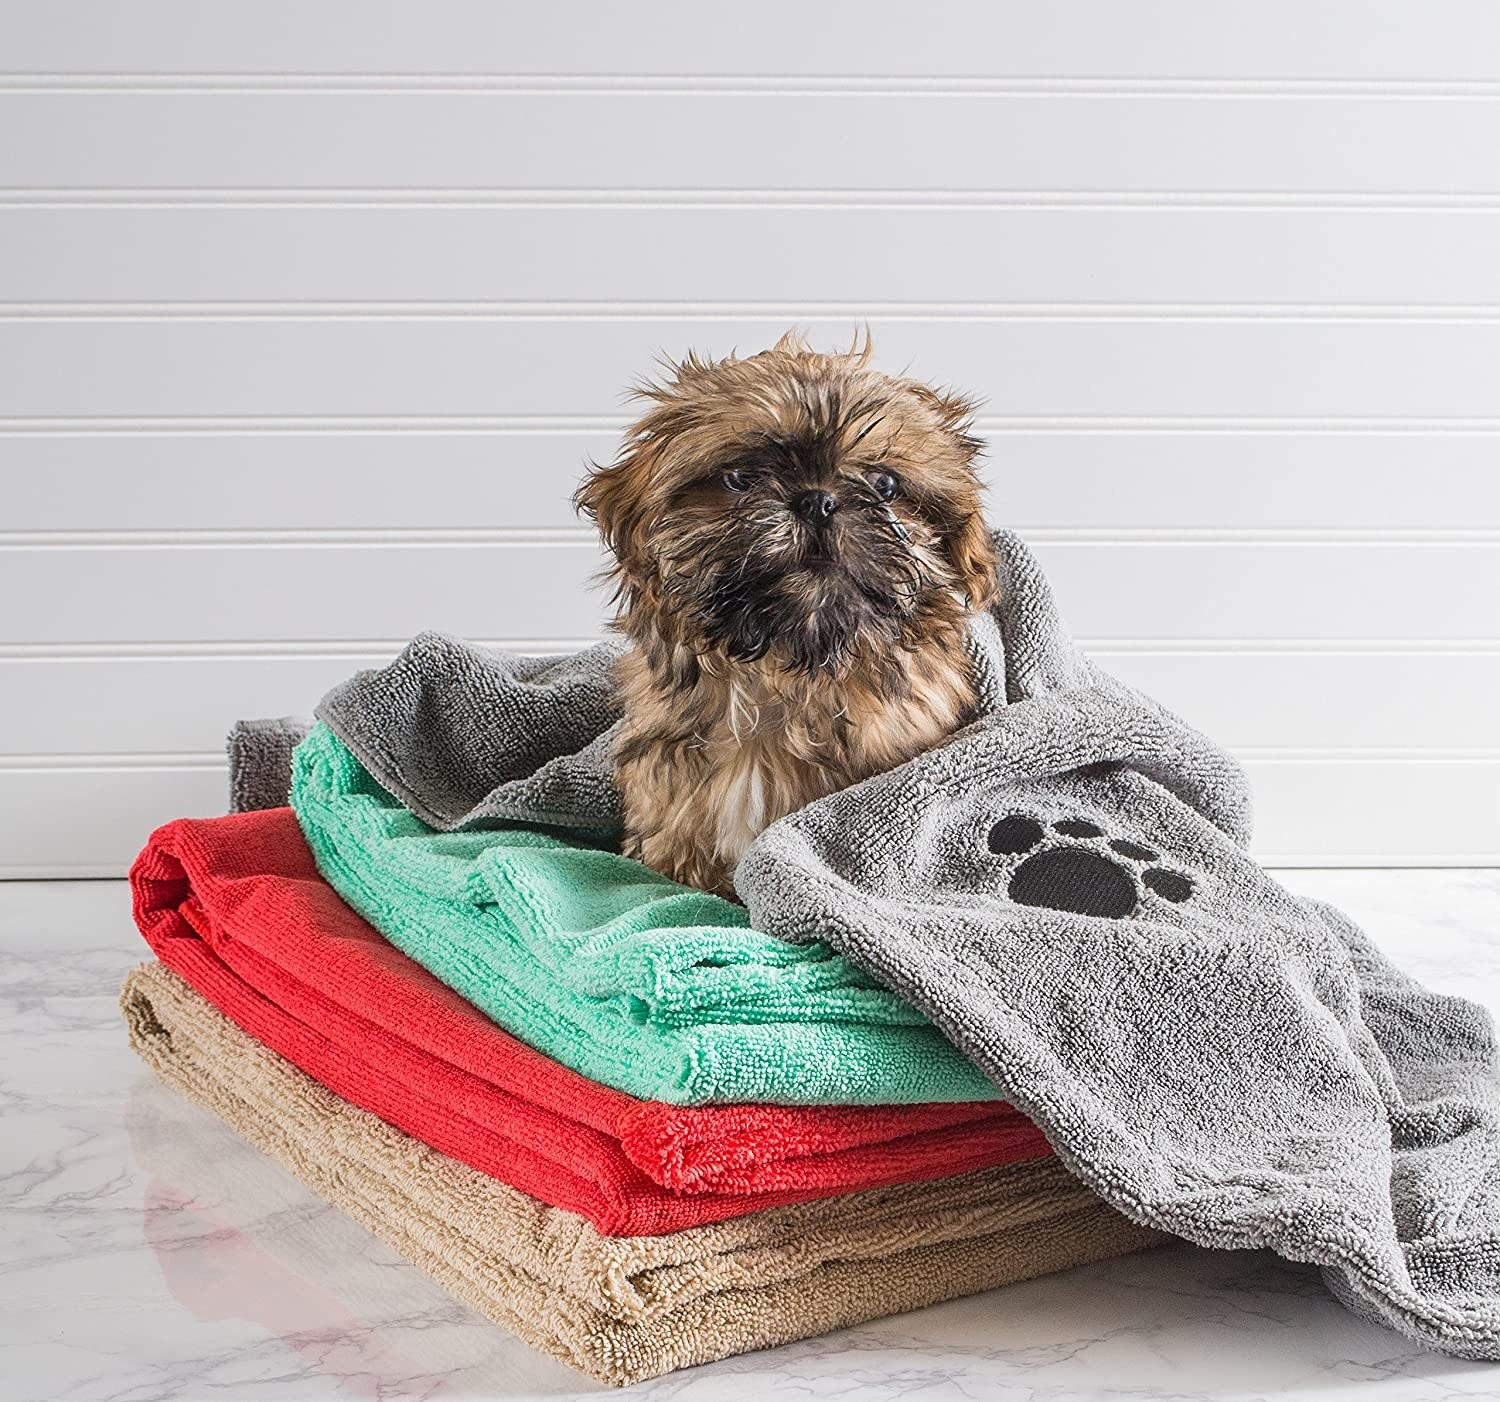 A dog wrapped in a grey towel and sitting on three towels of different colors